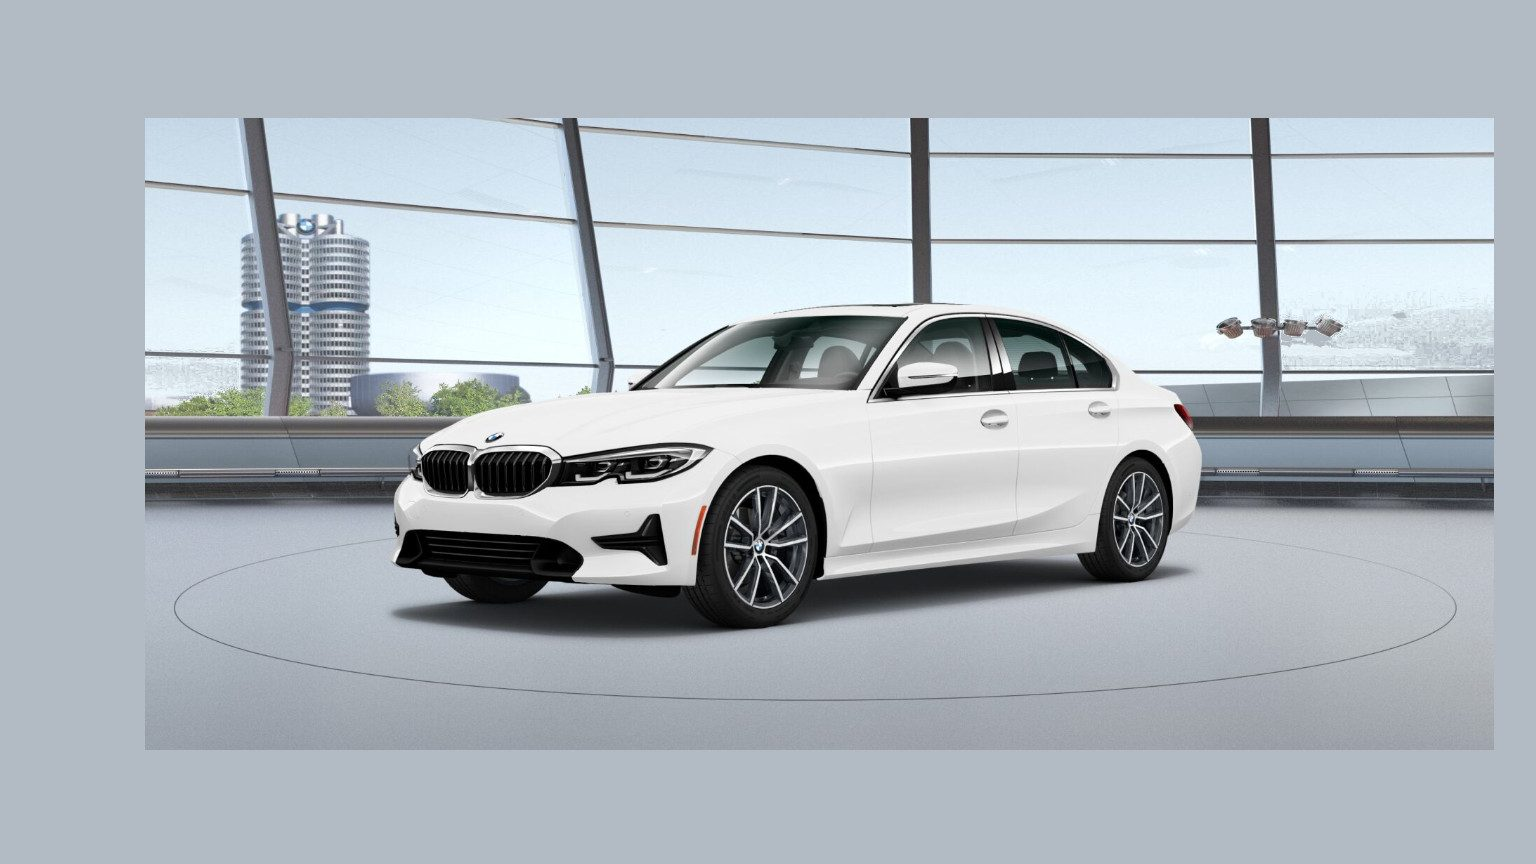 White BMW 3 series sedan